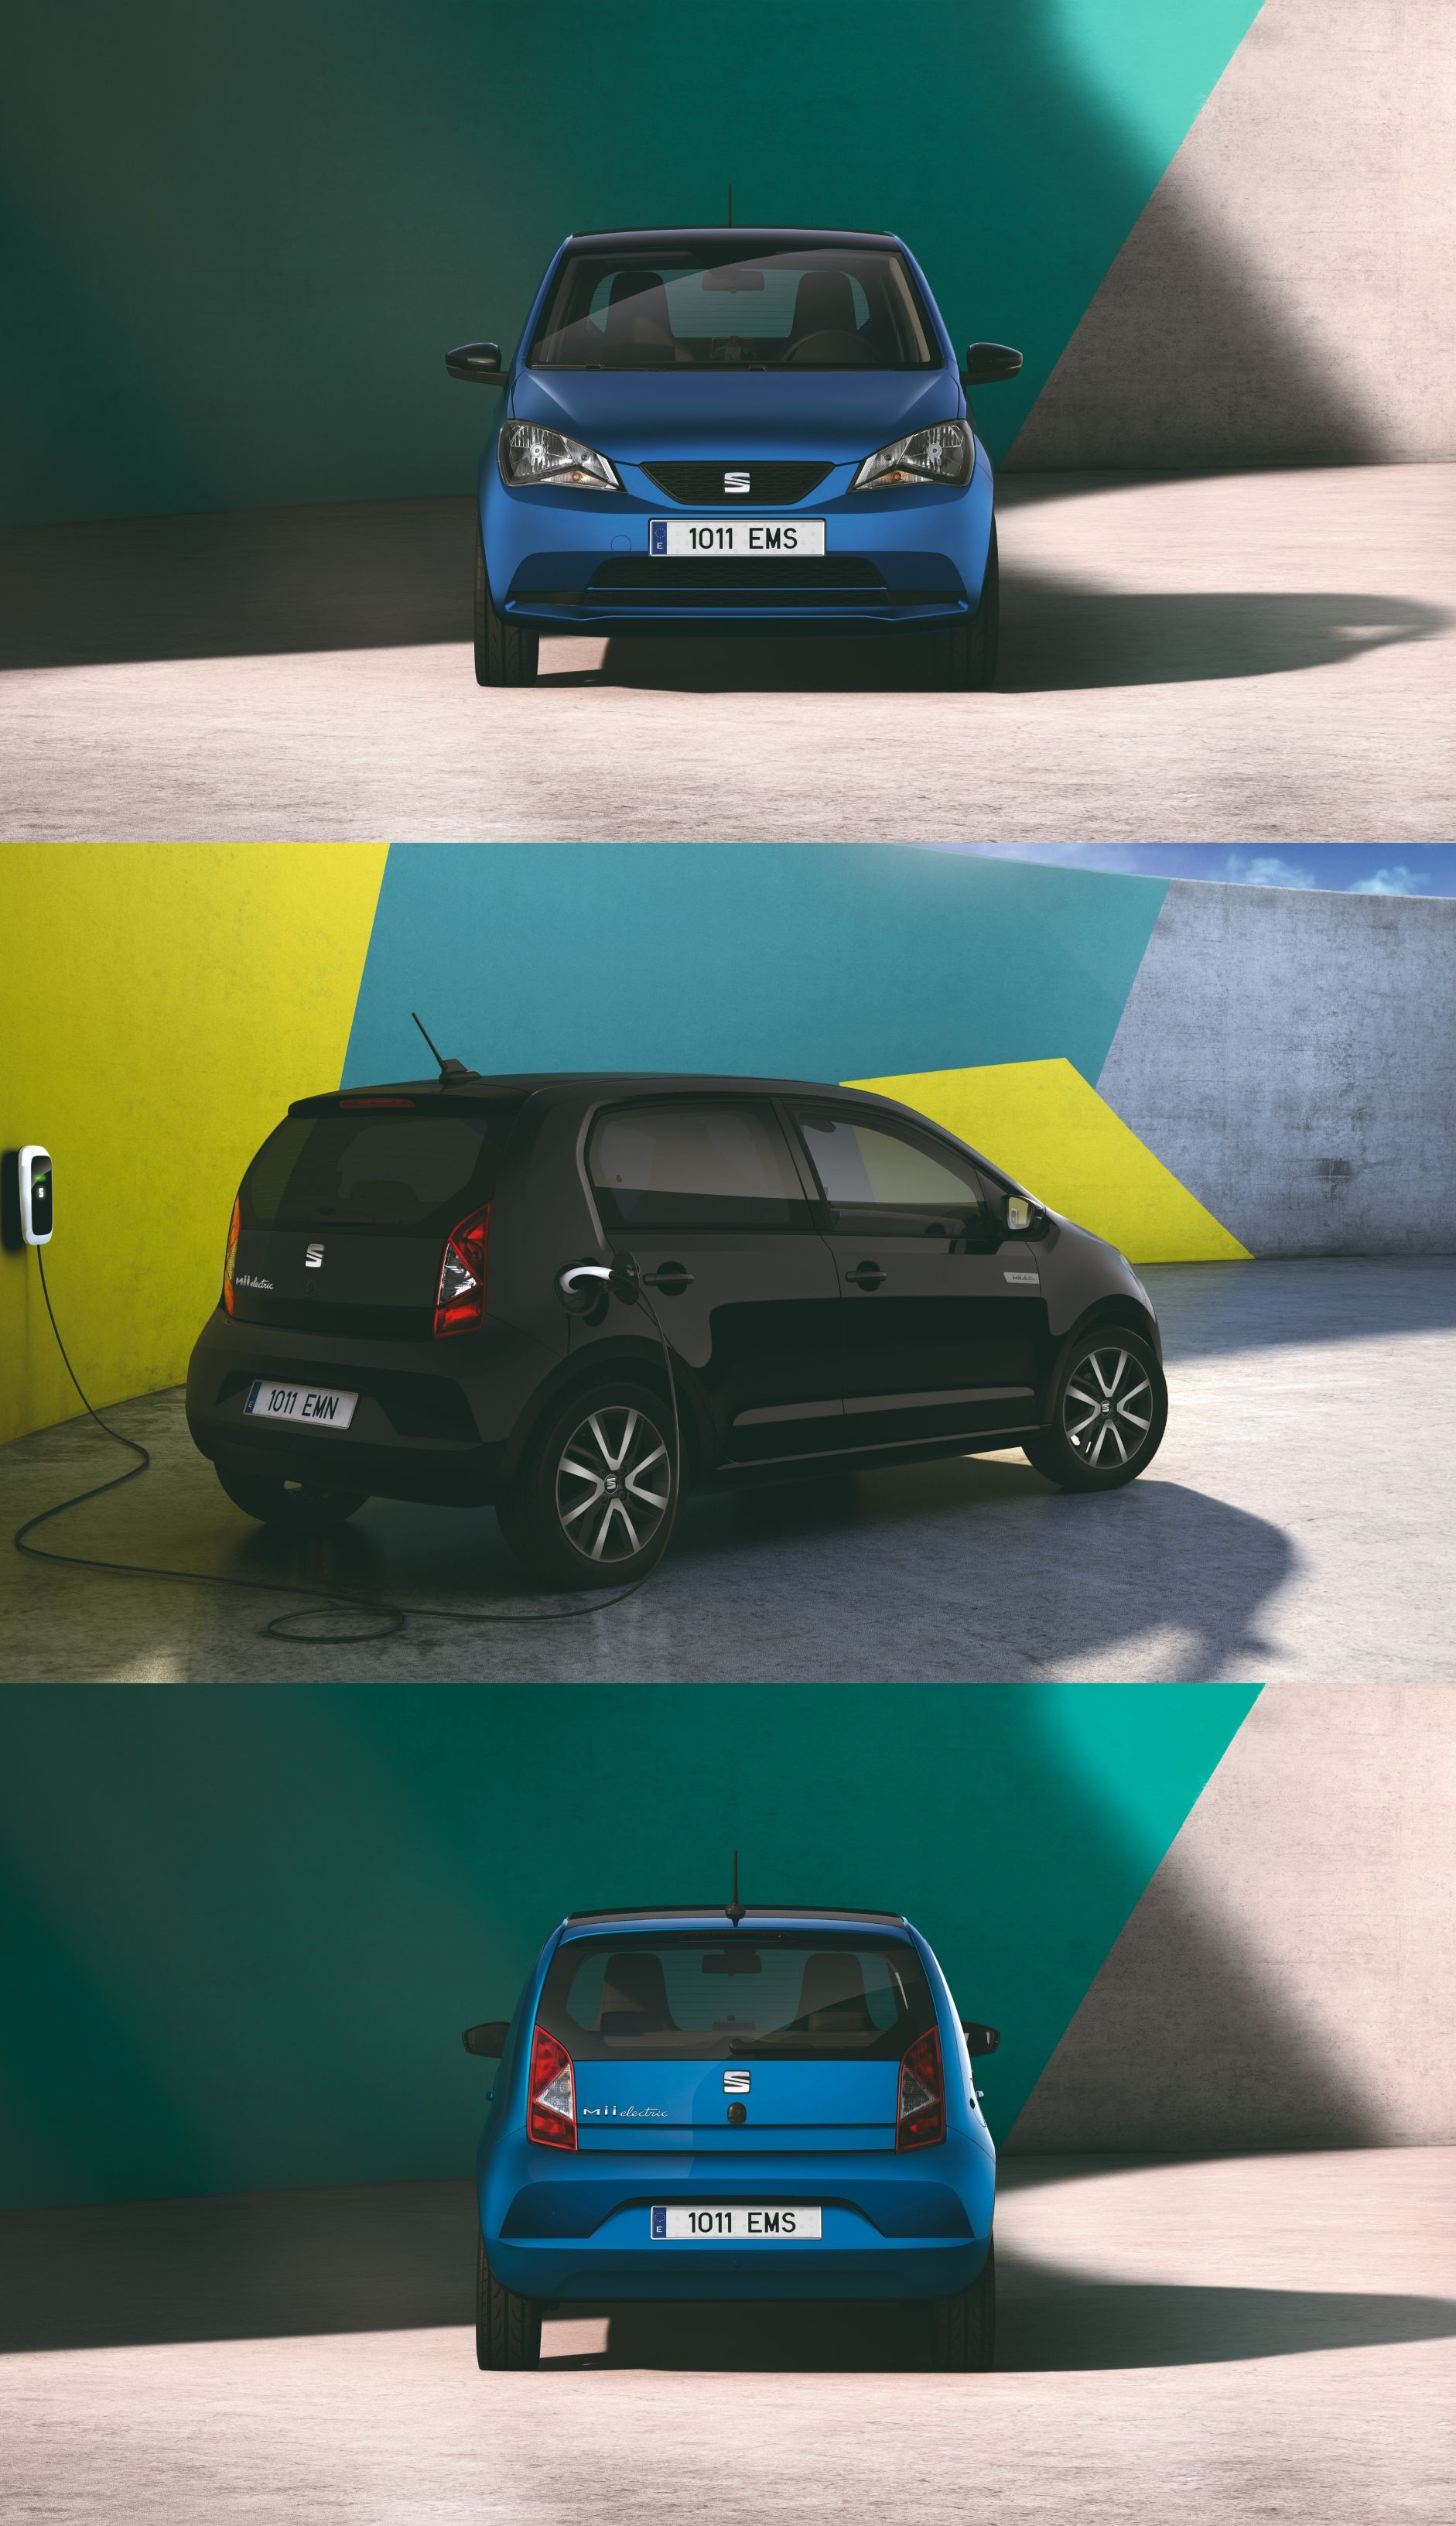 The New Seat Mii Electric Small In Size And A Stylish Design The